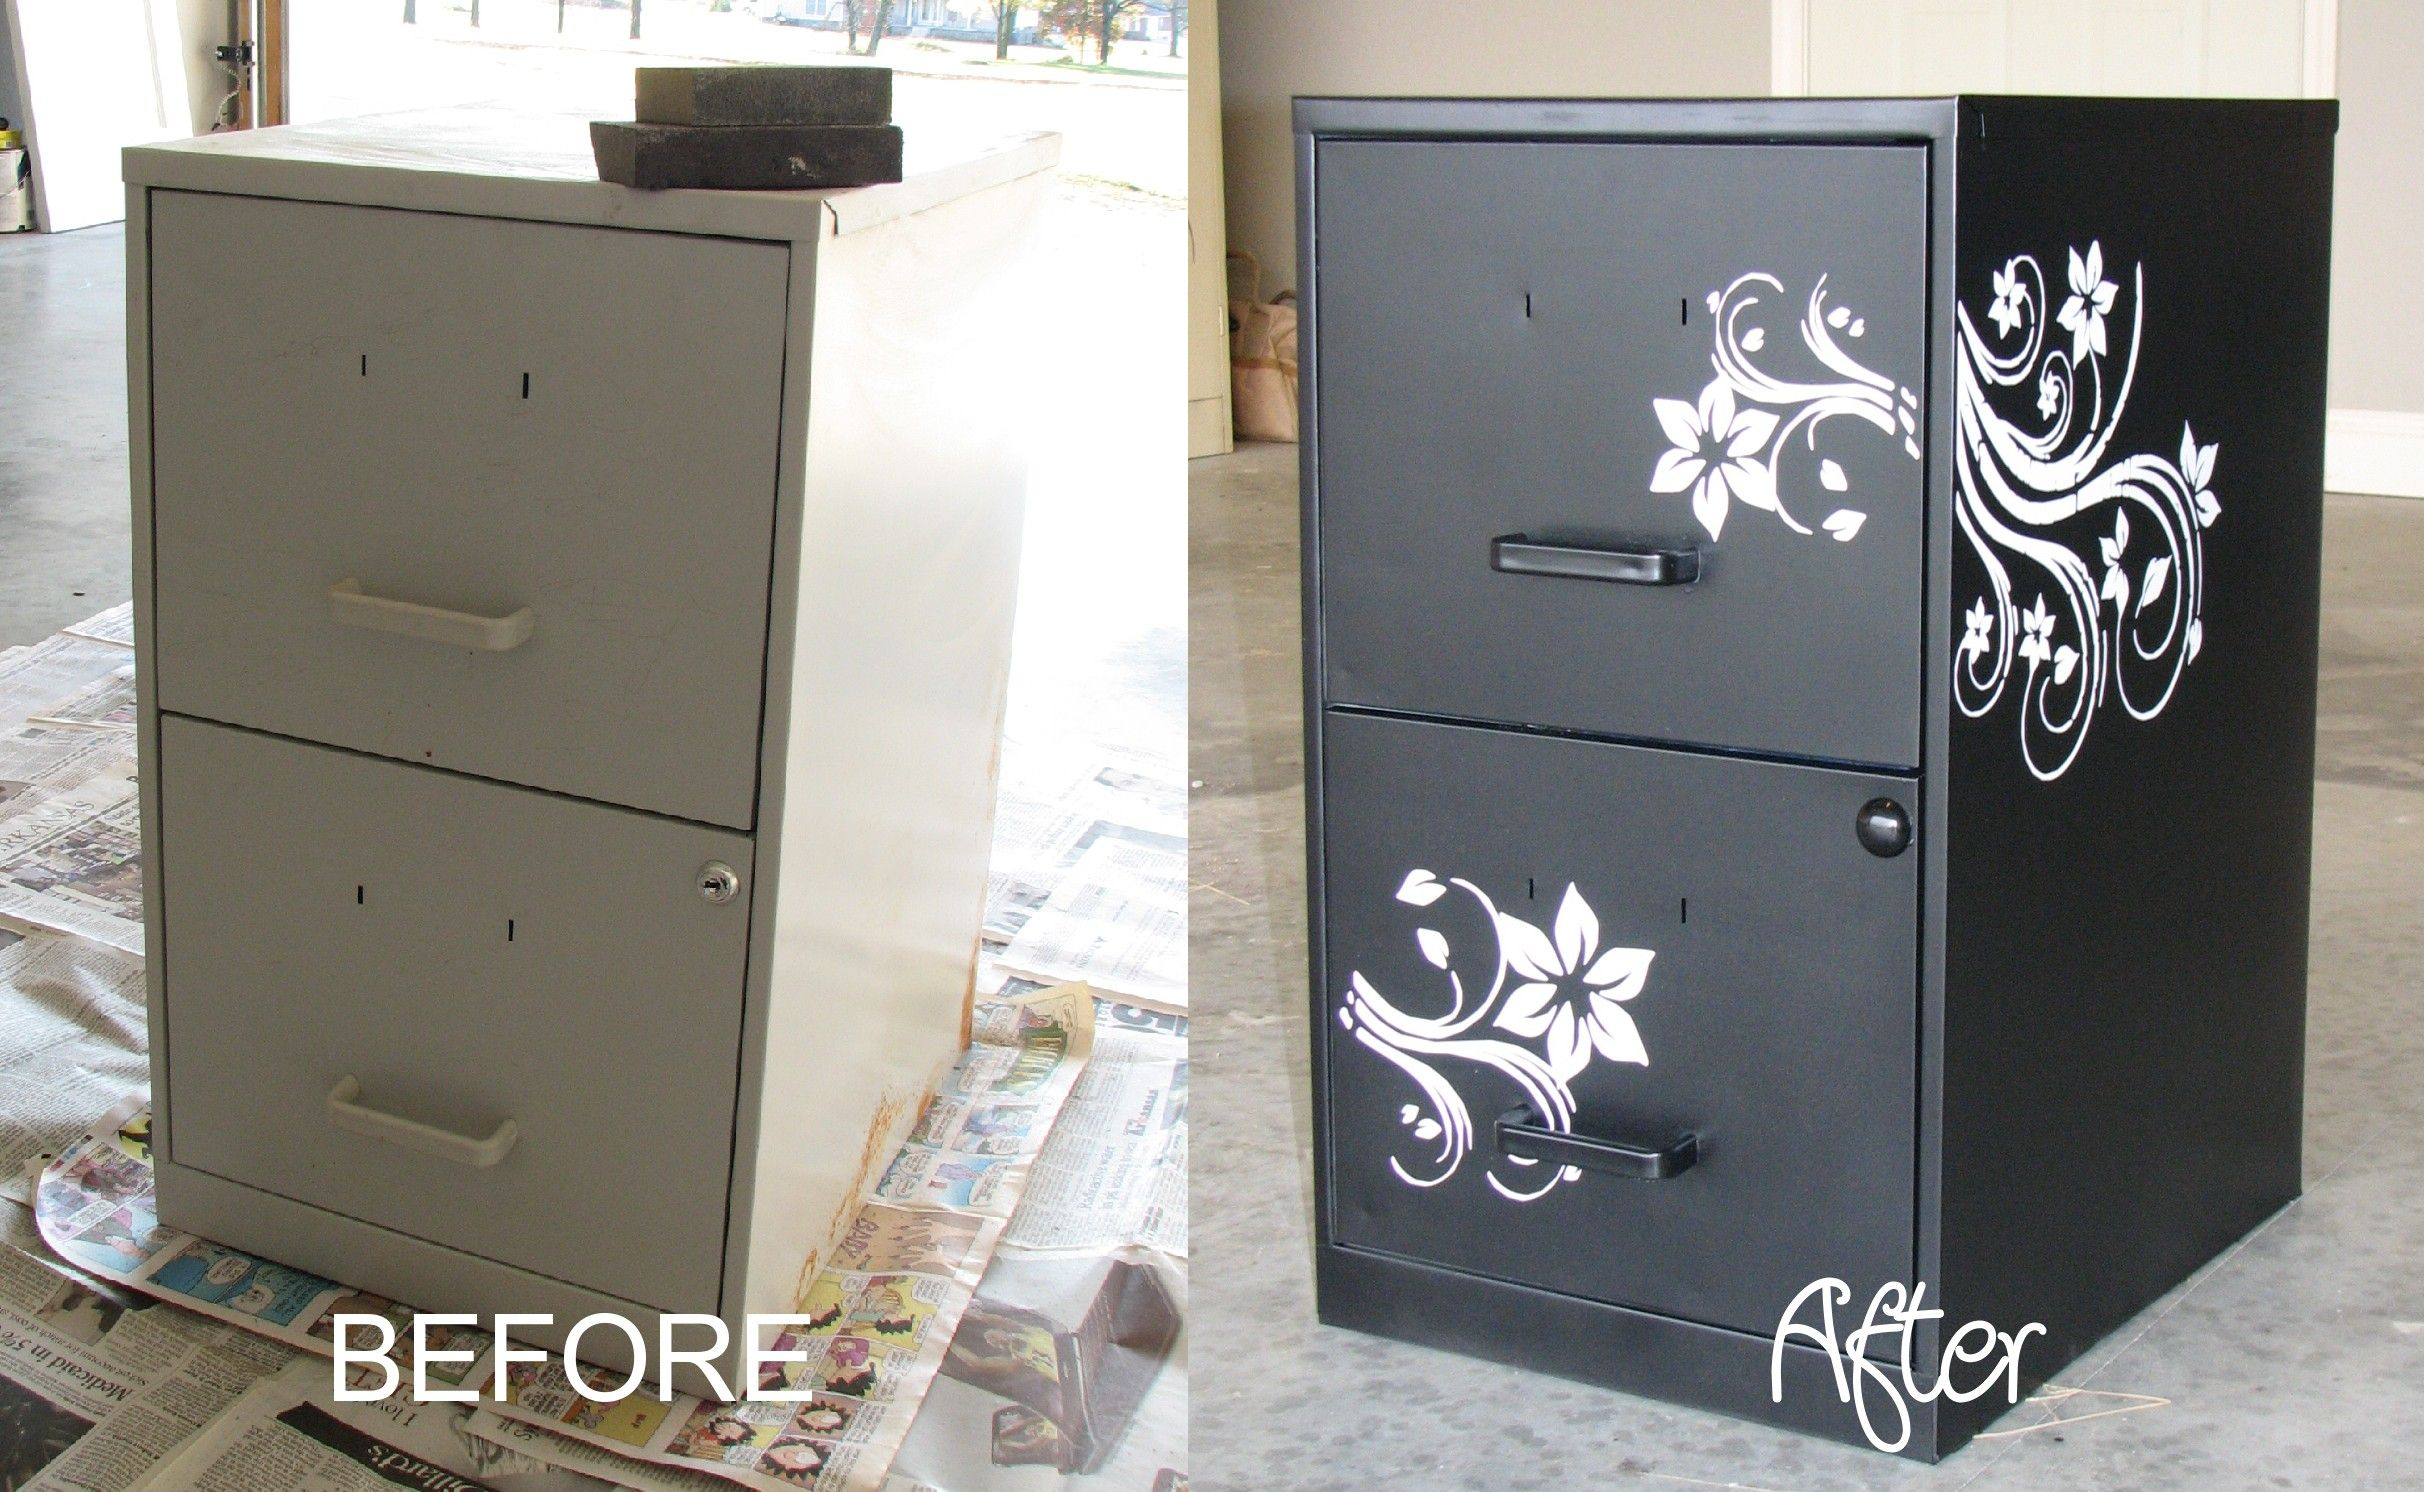 Top Spray Paint Filing Cabinet on a budget